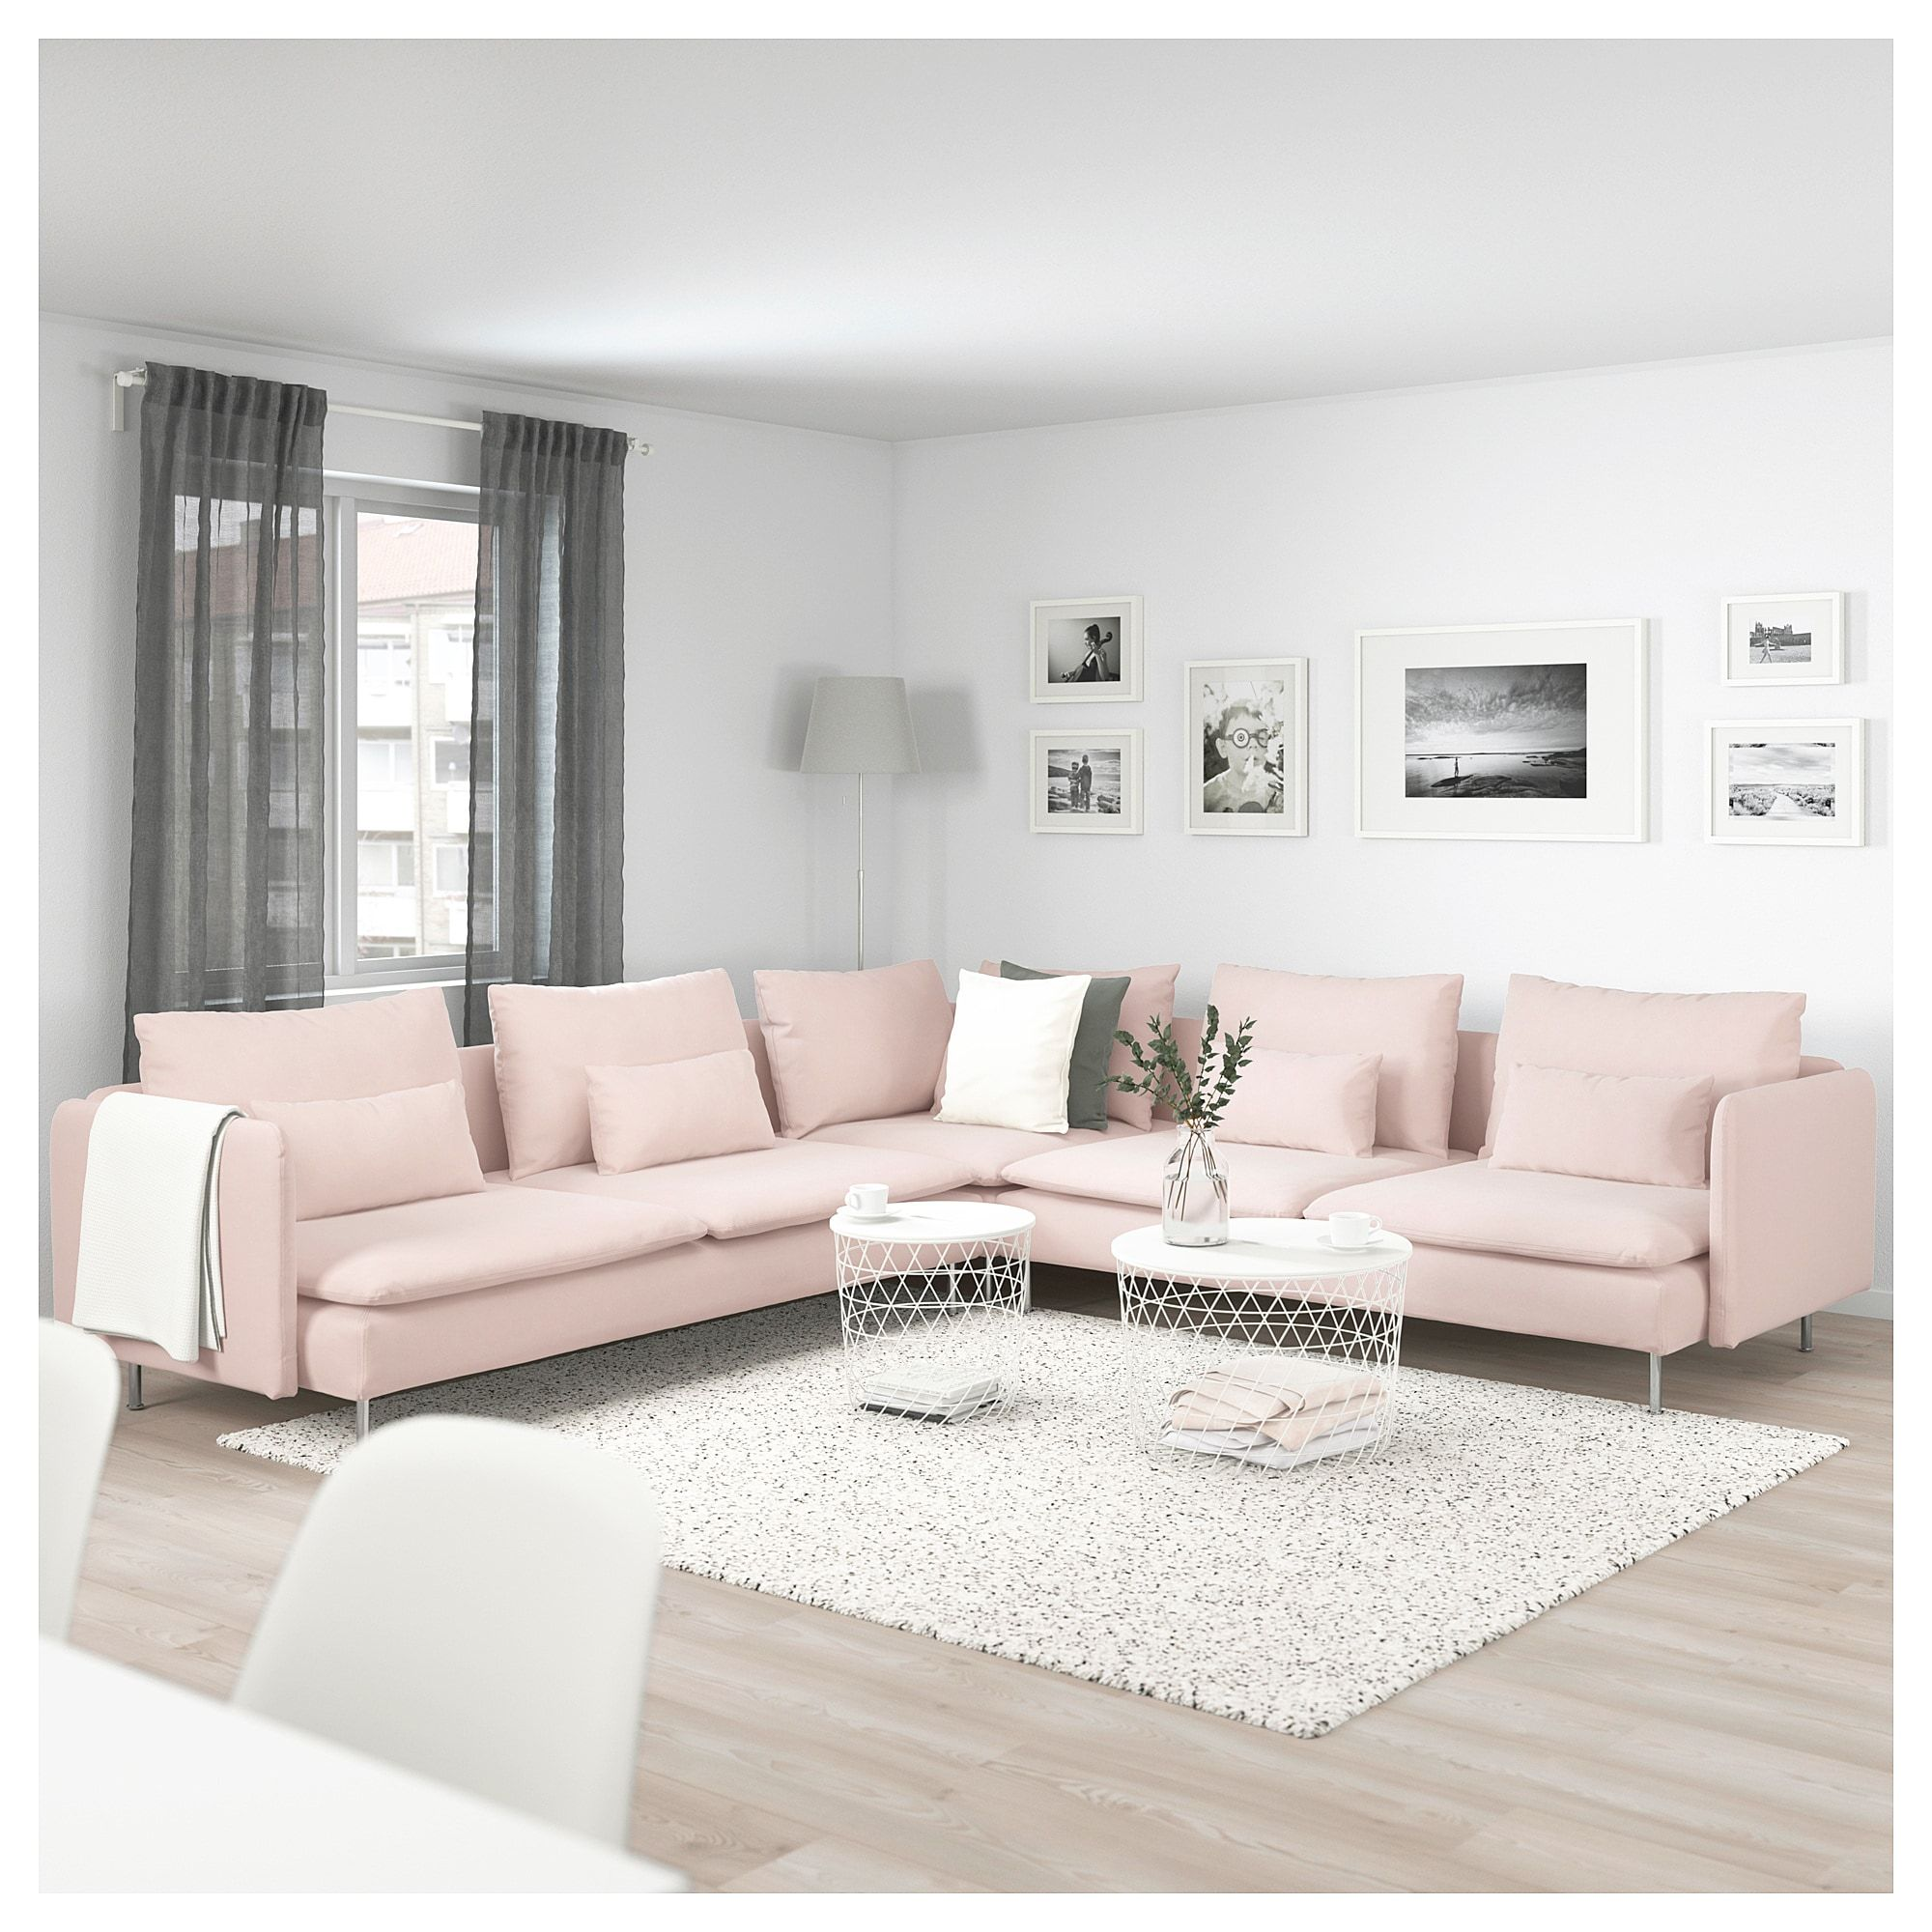 Soderhamn Sectional 5 Seat Samsta Light Pink Living Room Decor Cozy Living Room Decor Apartment Apartment Living Room